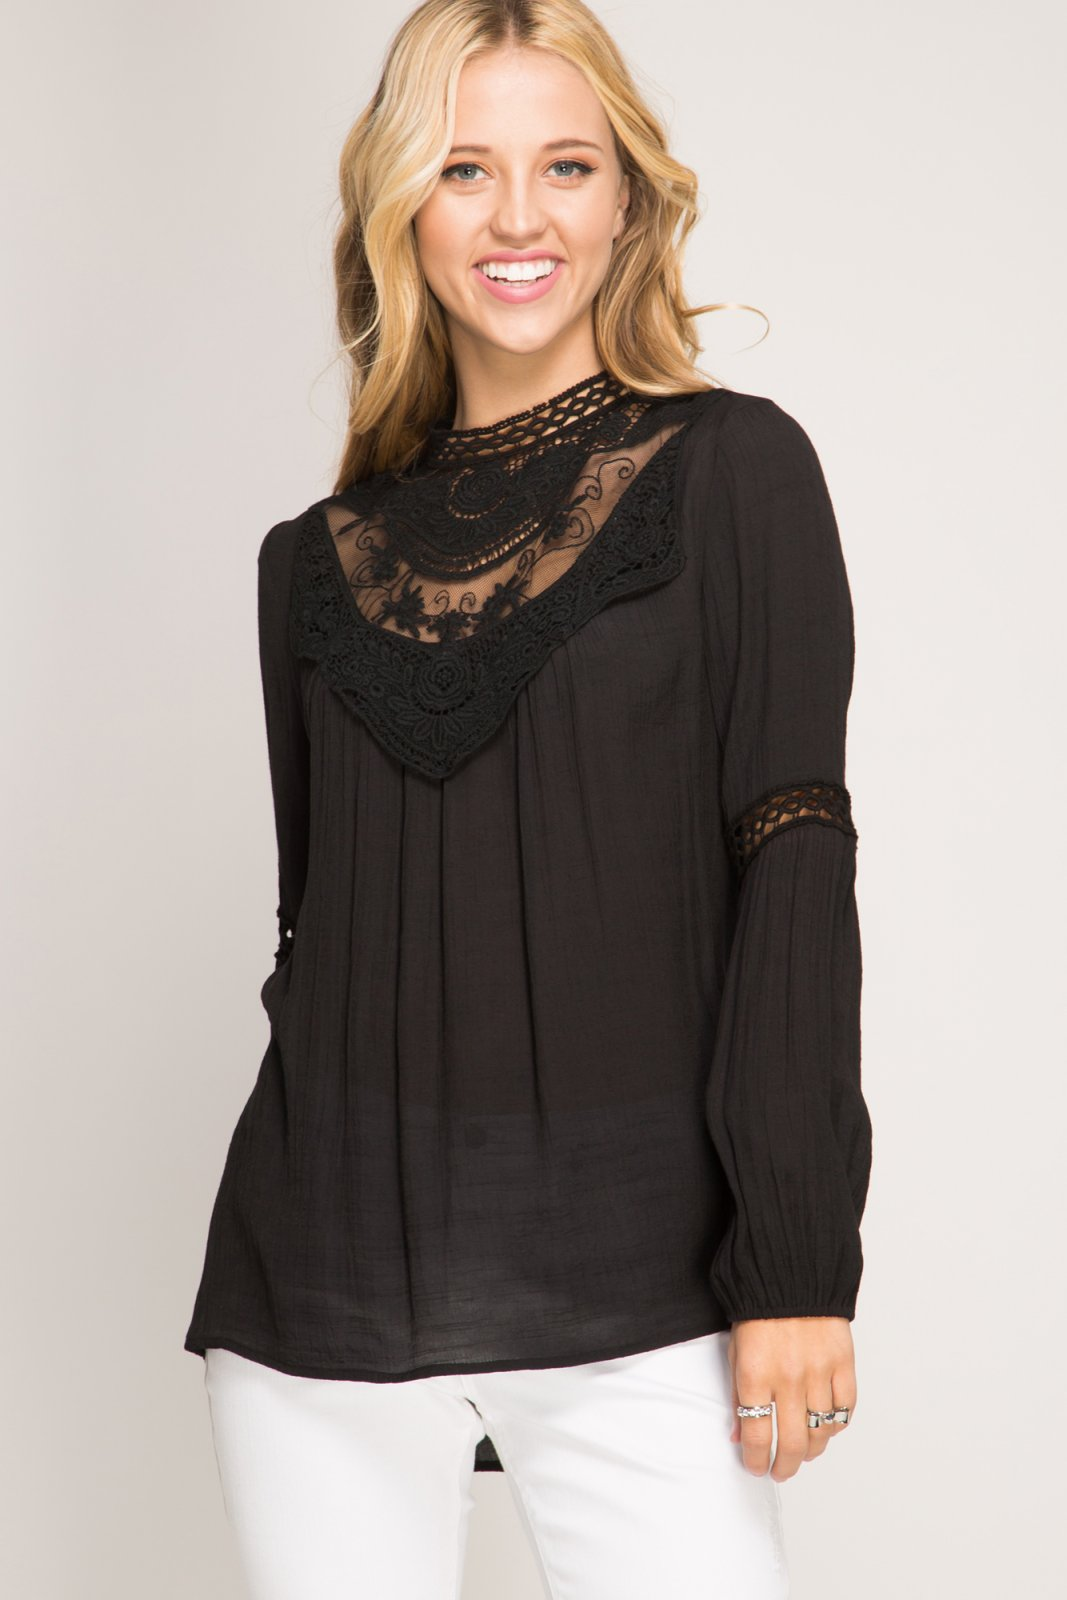 BLOUSE Embroidered BLACK